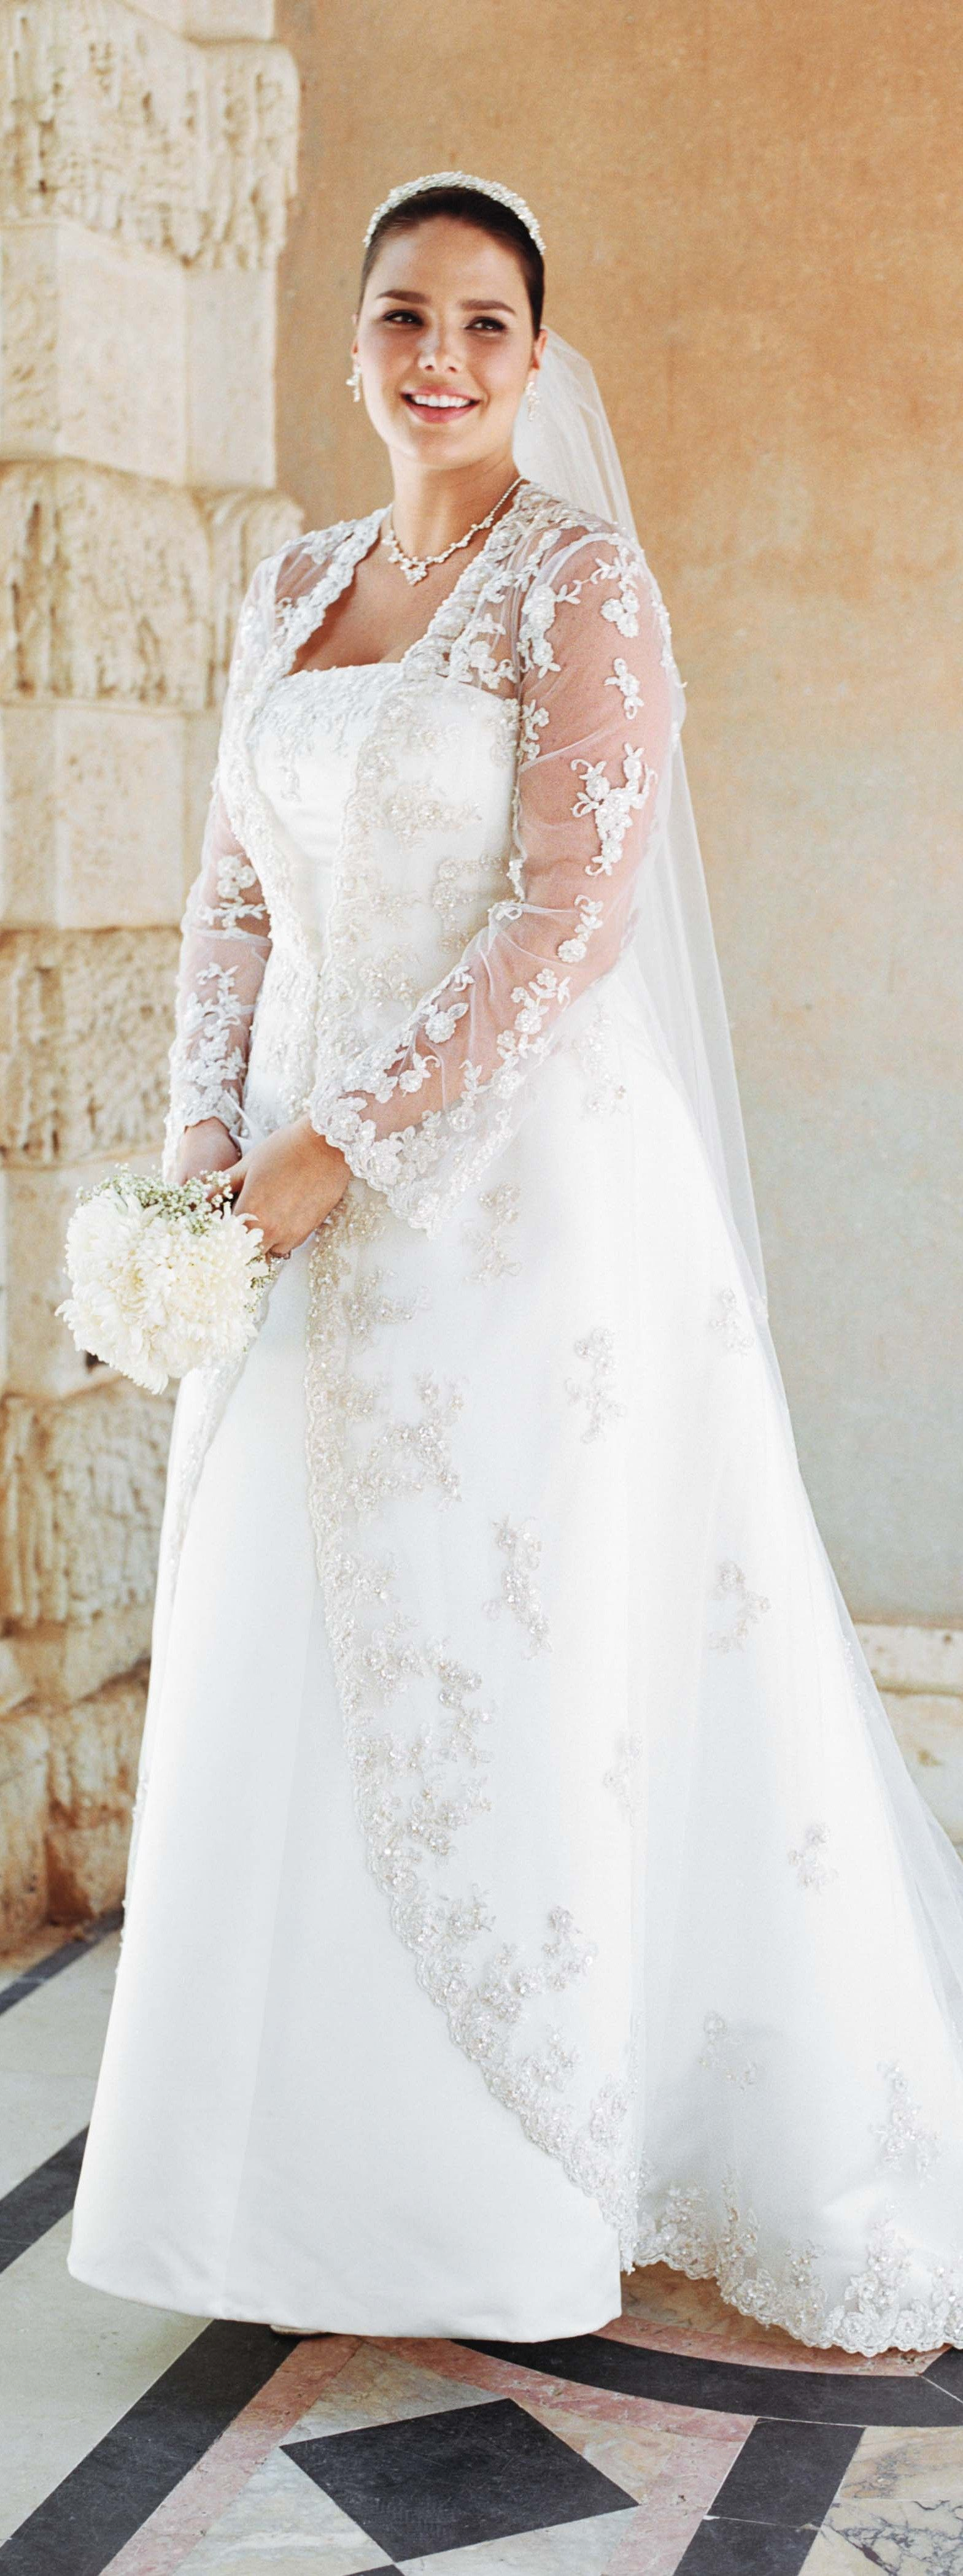 Wedding dress with sleeves from David's Bridal   Article about ...